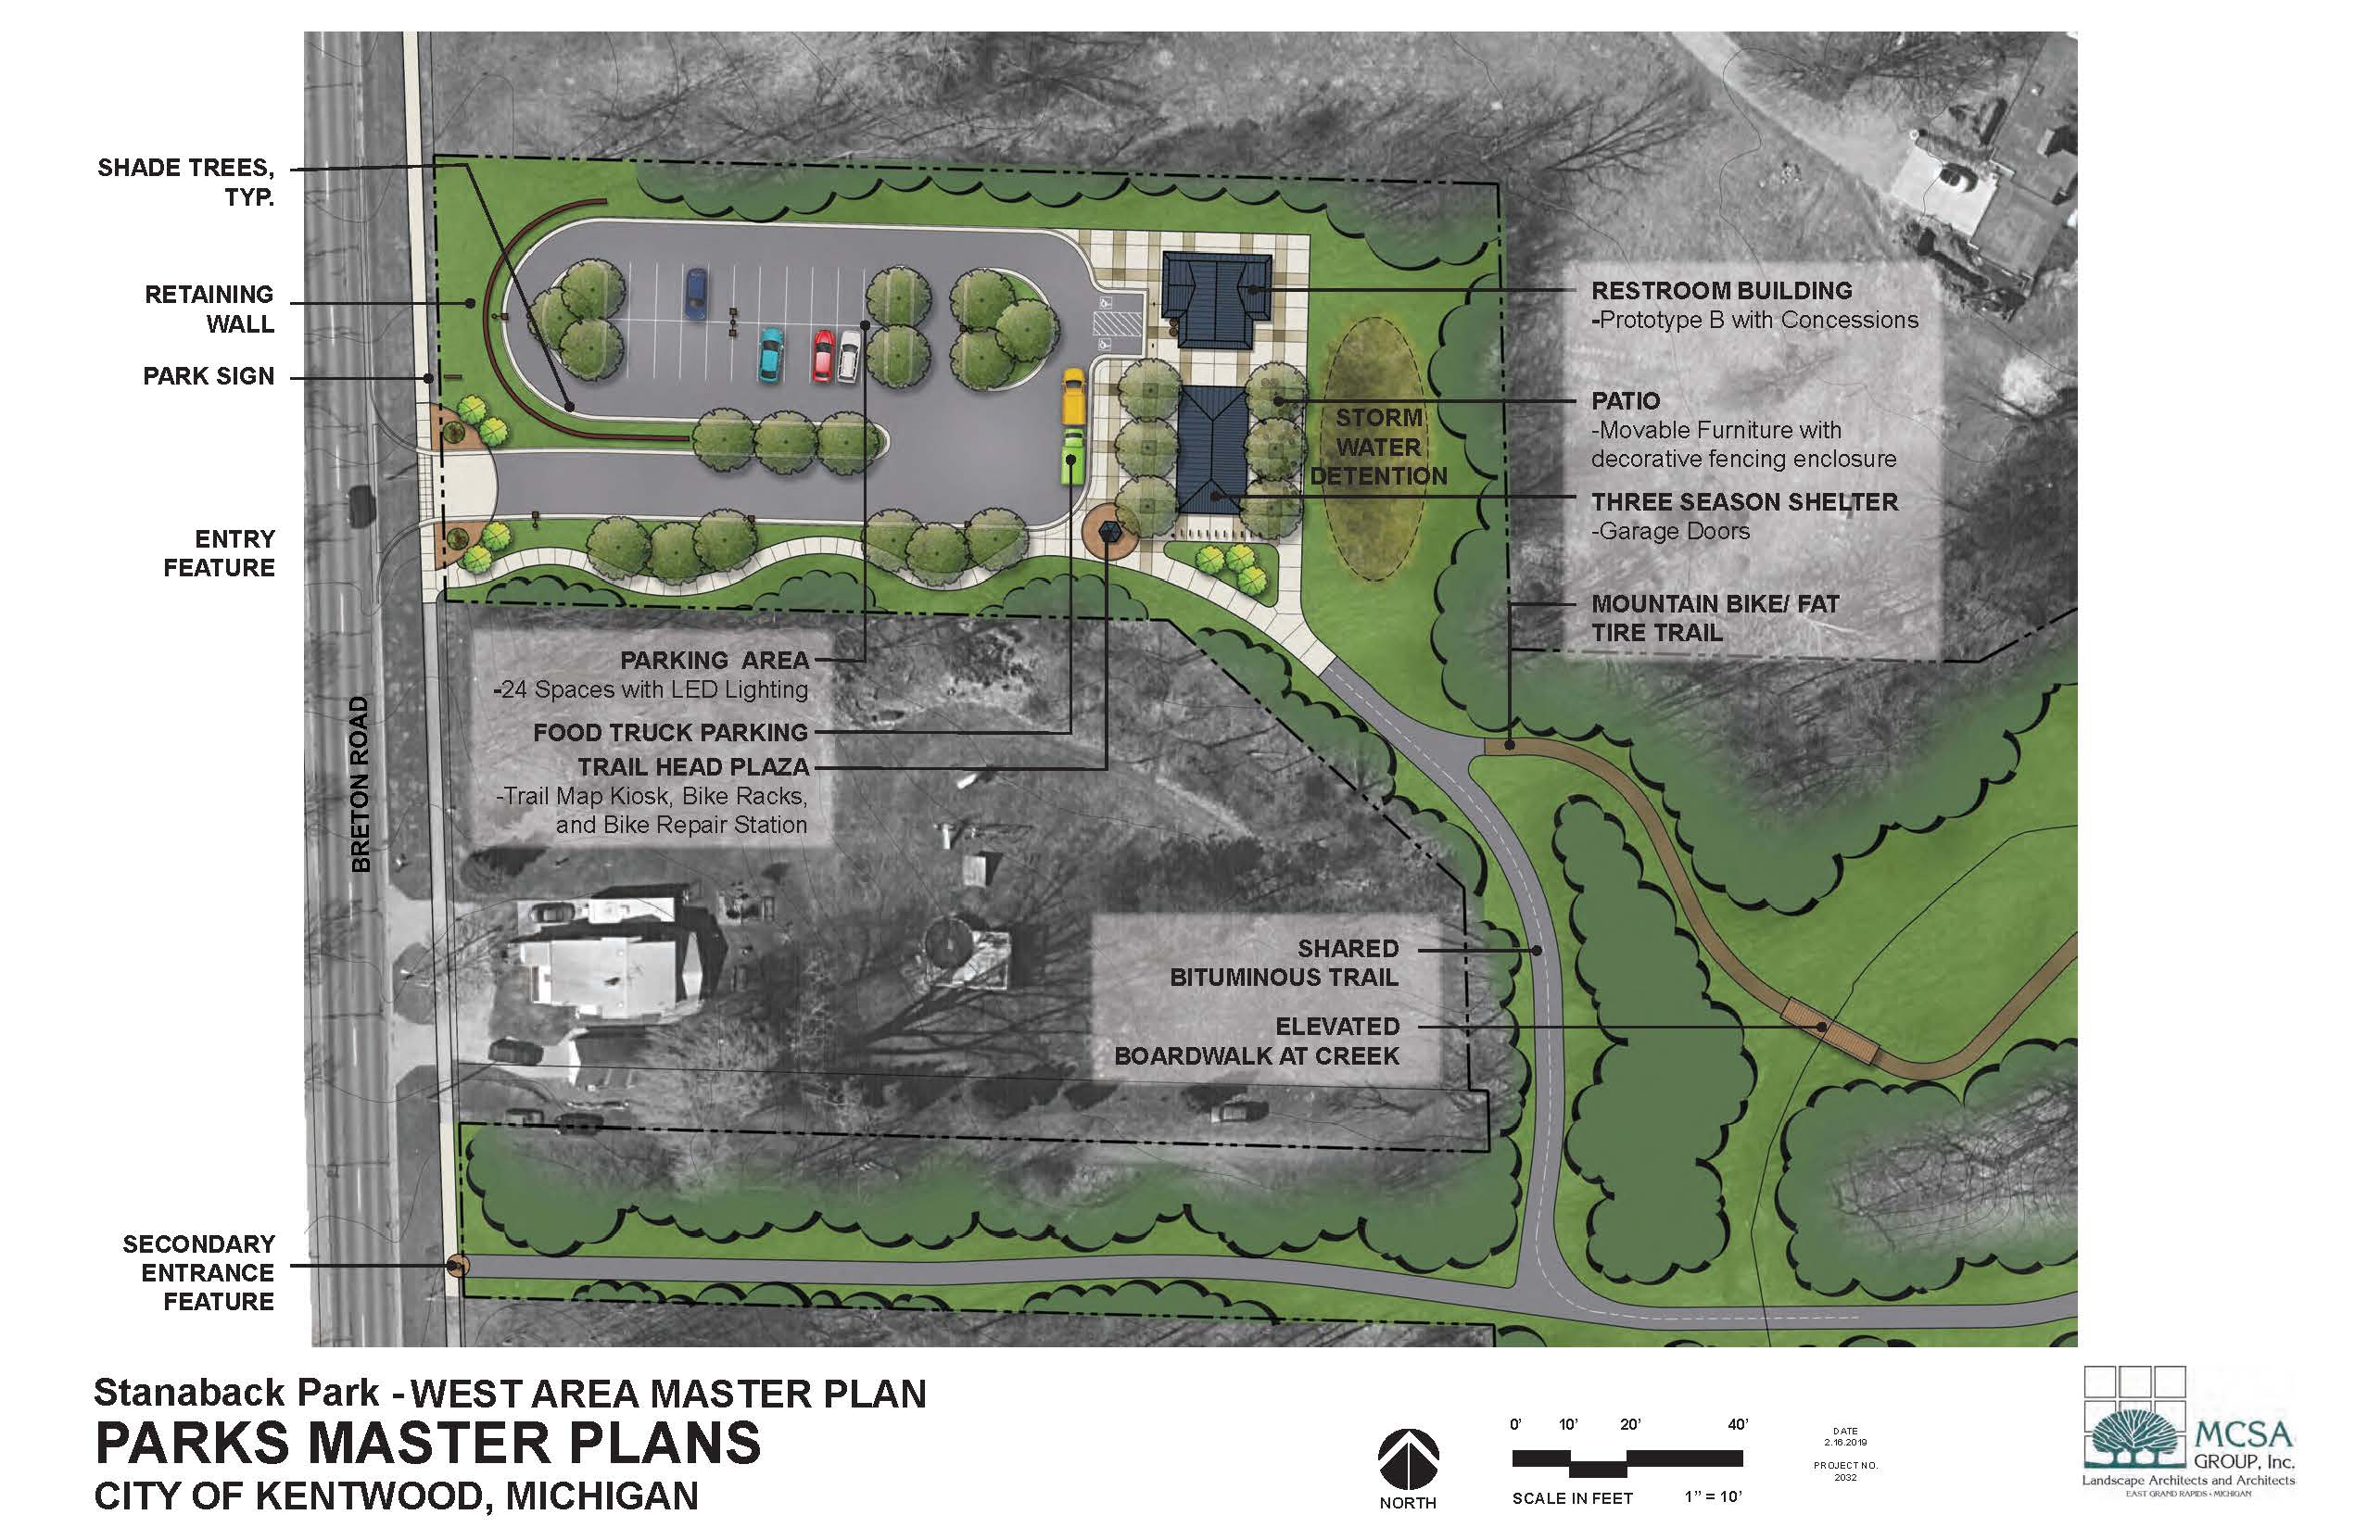 Stanaback Park west plan